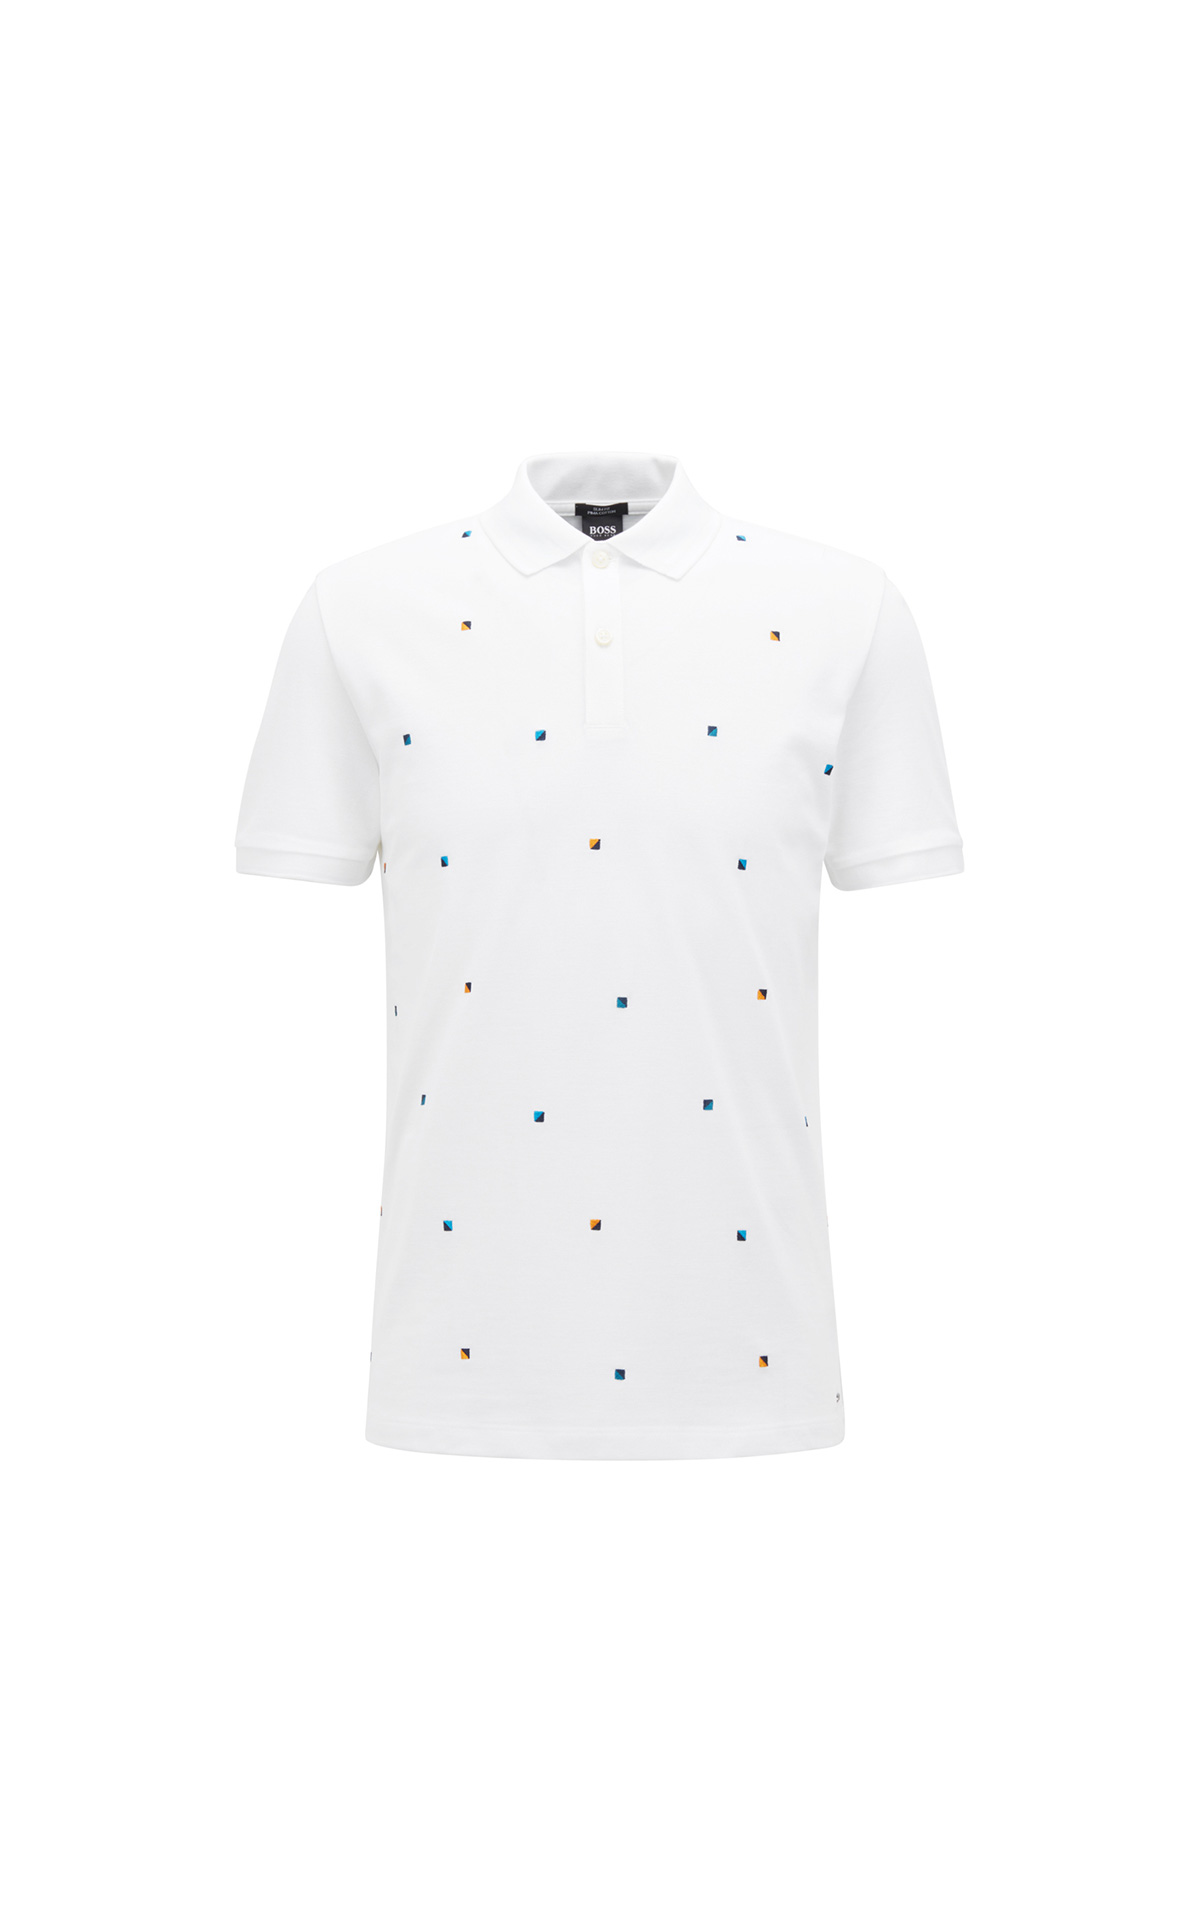 BOSS polo shirt at The Bicester Village Shopping Collection